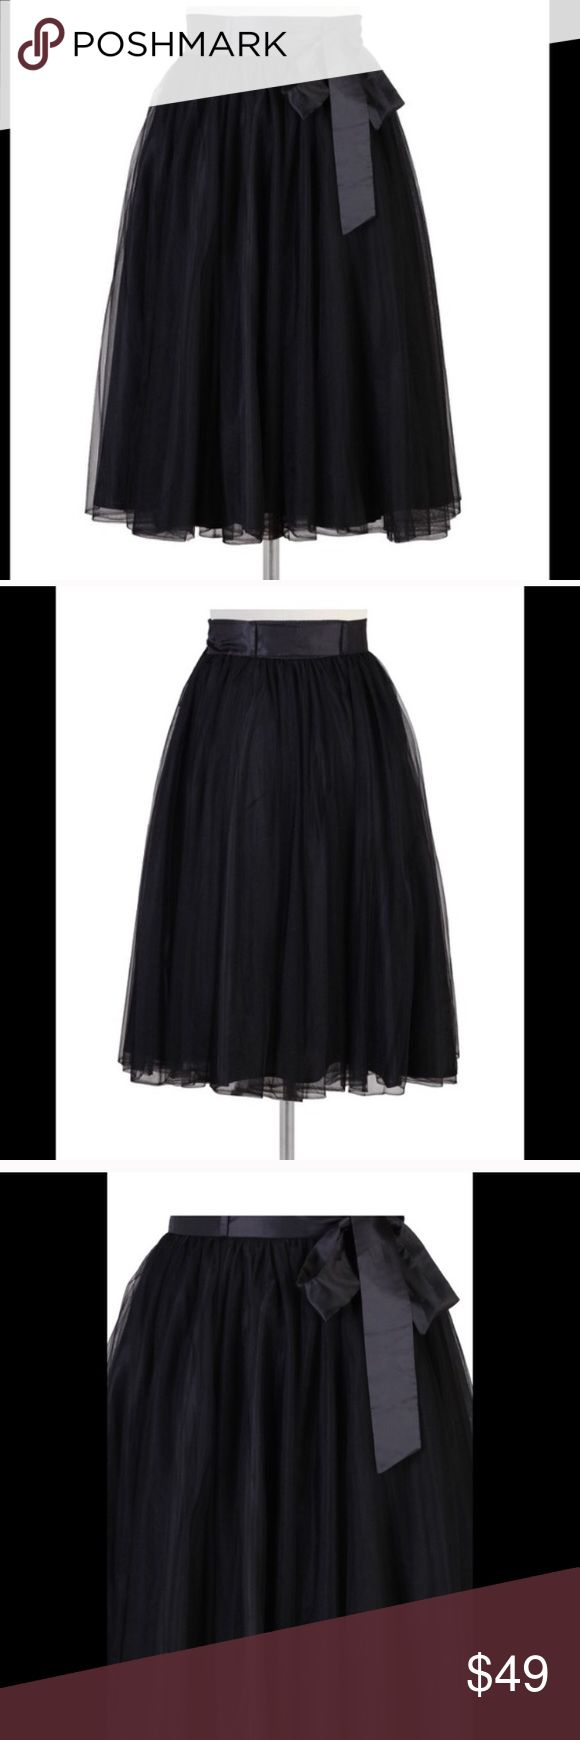 """Eshkati Midi Crinoline Skirt - Size 14 Want to feel beautiful and romantic with the right about of whimsy and be completely comfortable? This skirt is perfect for you!  This skirt is made of layered black tulle and a black band with removable sash. Length - 31 1/2"""" eshakti Skirts Midi"""